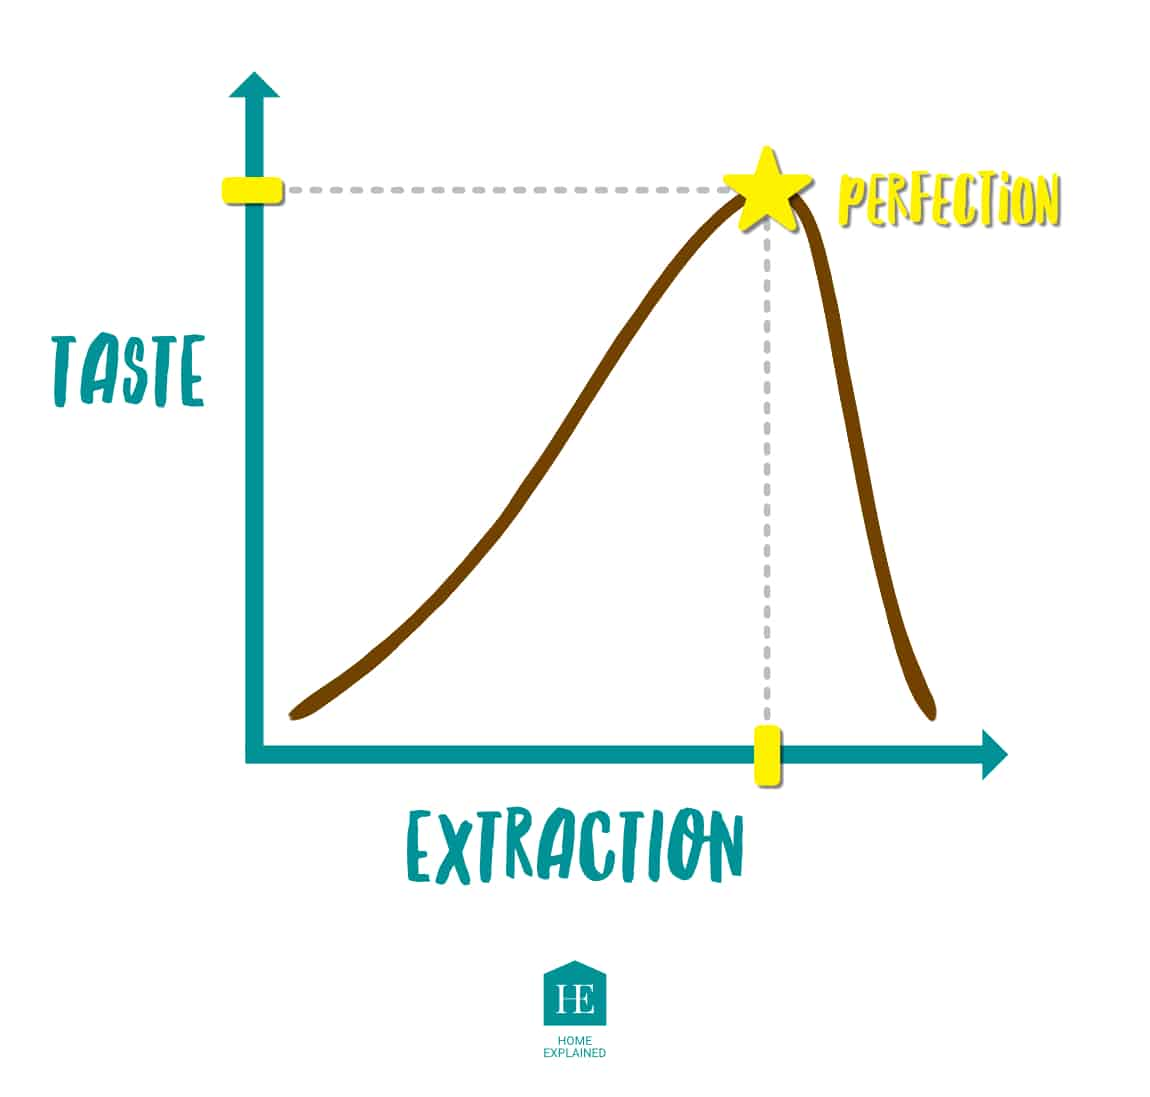 Perfect Espresso Extraction Chart   HomeExplained.com